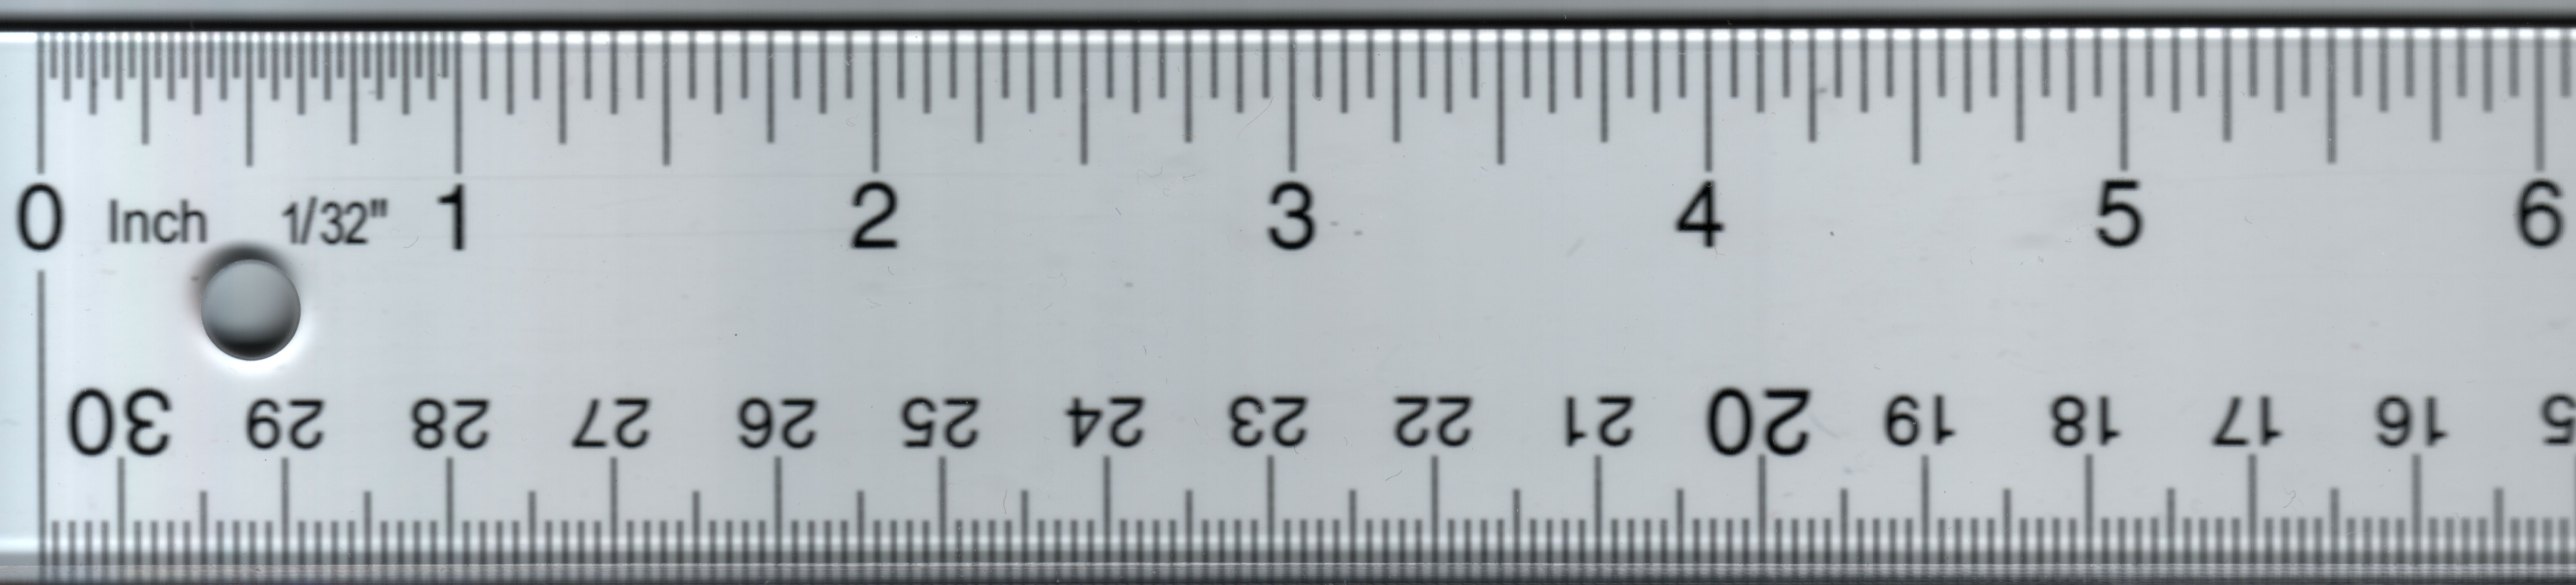 Inches Ruler Actual Size Mm size chart related keywords ...